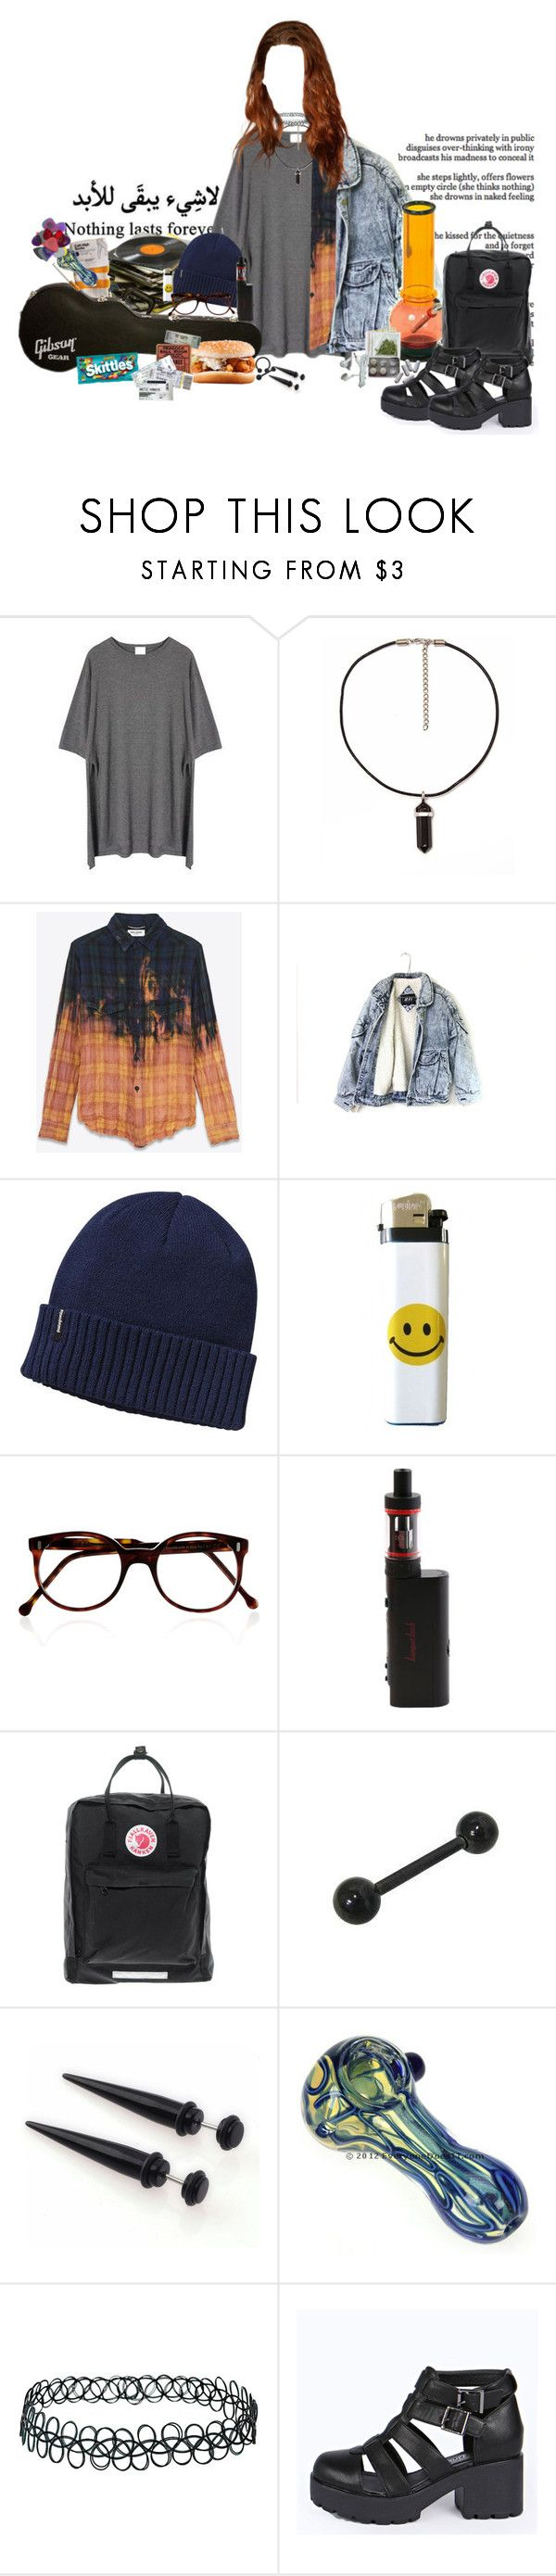 """Do Ya Thing~Gorillaz"" by headbangingunicorn ❤ liked on Polyvore featuring xO Design, Momewear, Yves Saint Laurent, Patagonia, Cutler and Gross, Fjällräven, Topshop and Boohoo"